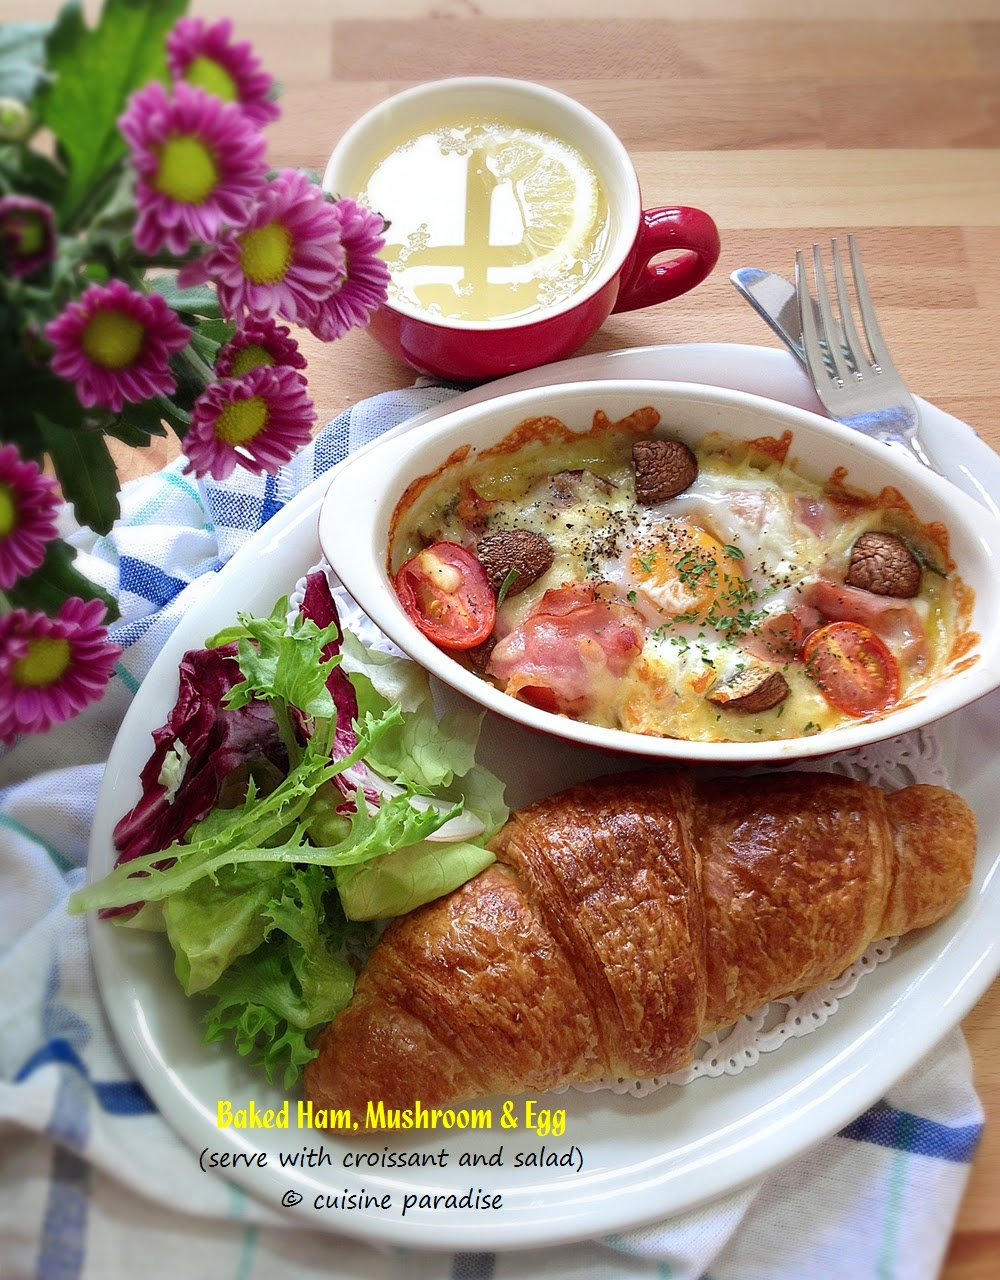 Cuisine paradise singapore food blog recipes reviews and travel cafe style breakfast baked ham mushroom and egg served with croissant and salad forumfinder Images